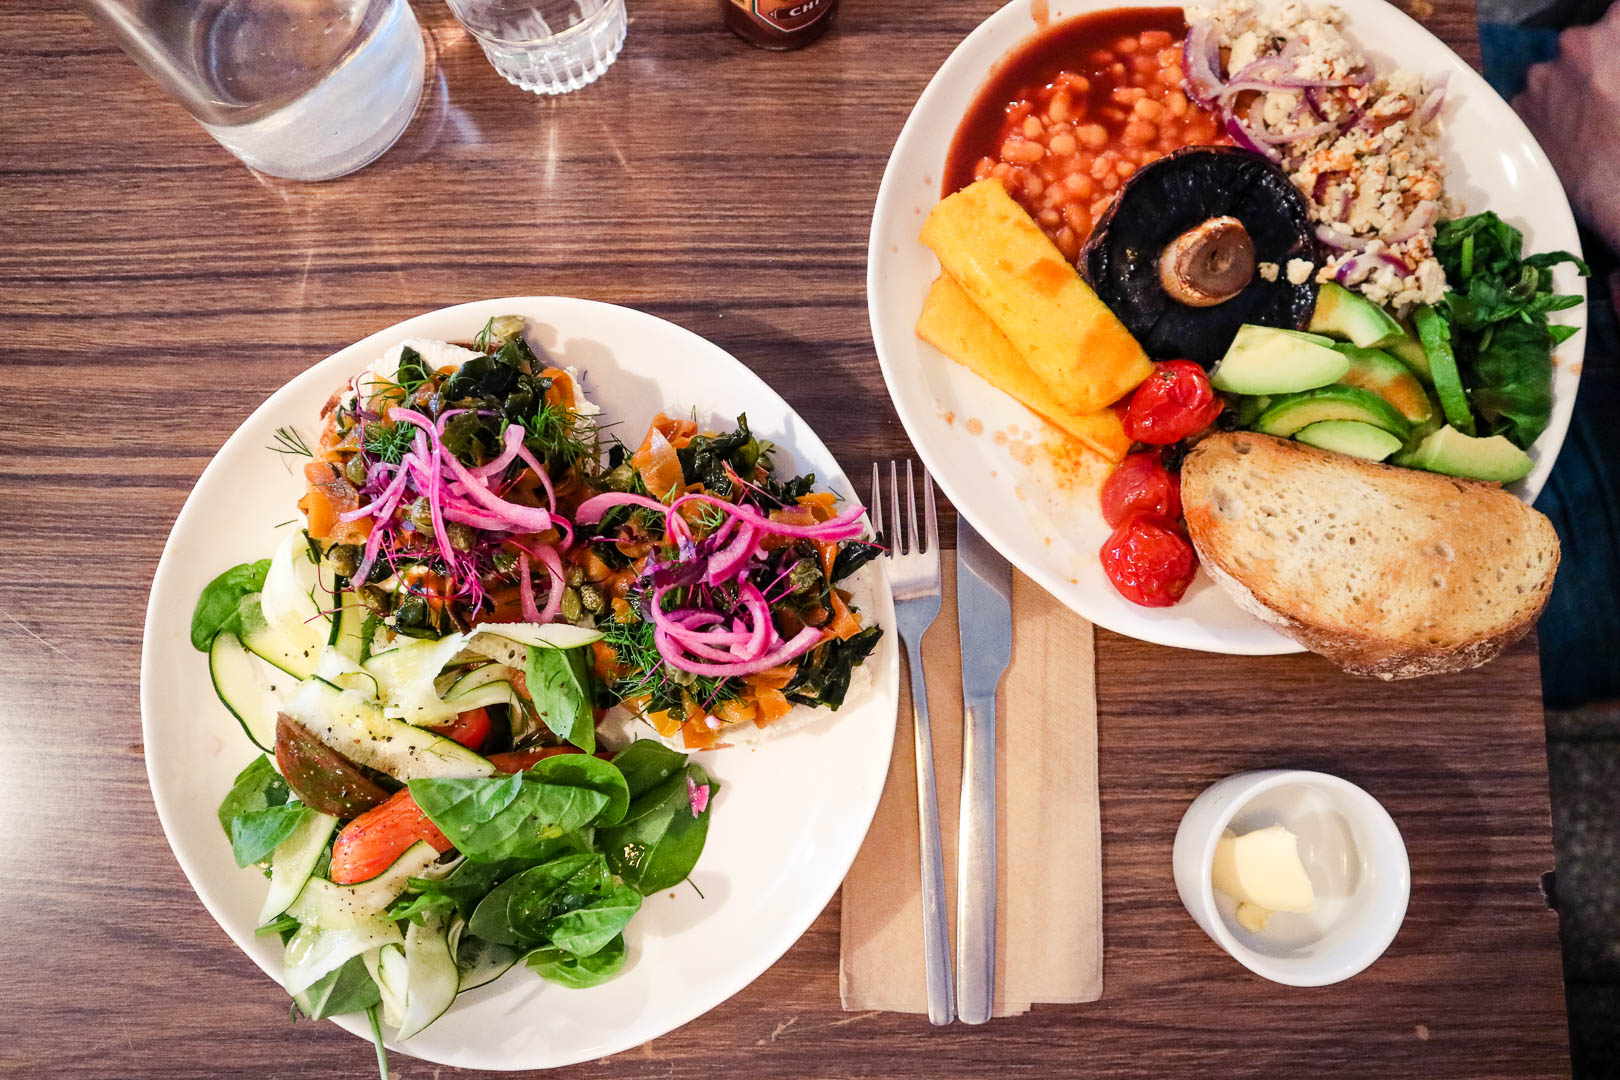 Mala Carne is a tiny cafe in the Southside of Glasgow, serving vegetarian and vegan food in a warm and welcoming atmosphere. Slightly off the beaten path, Mala Carne Glasgow is certainly worth the trek, whether you're looking for a full breakfast or more experimental brunch items, like scrambled tofu or smoked carrot!